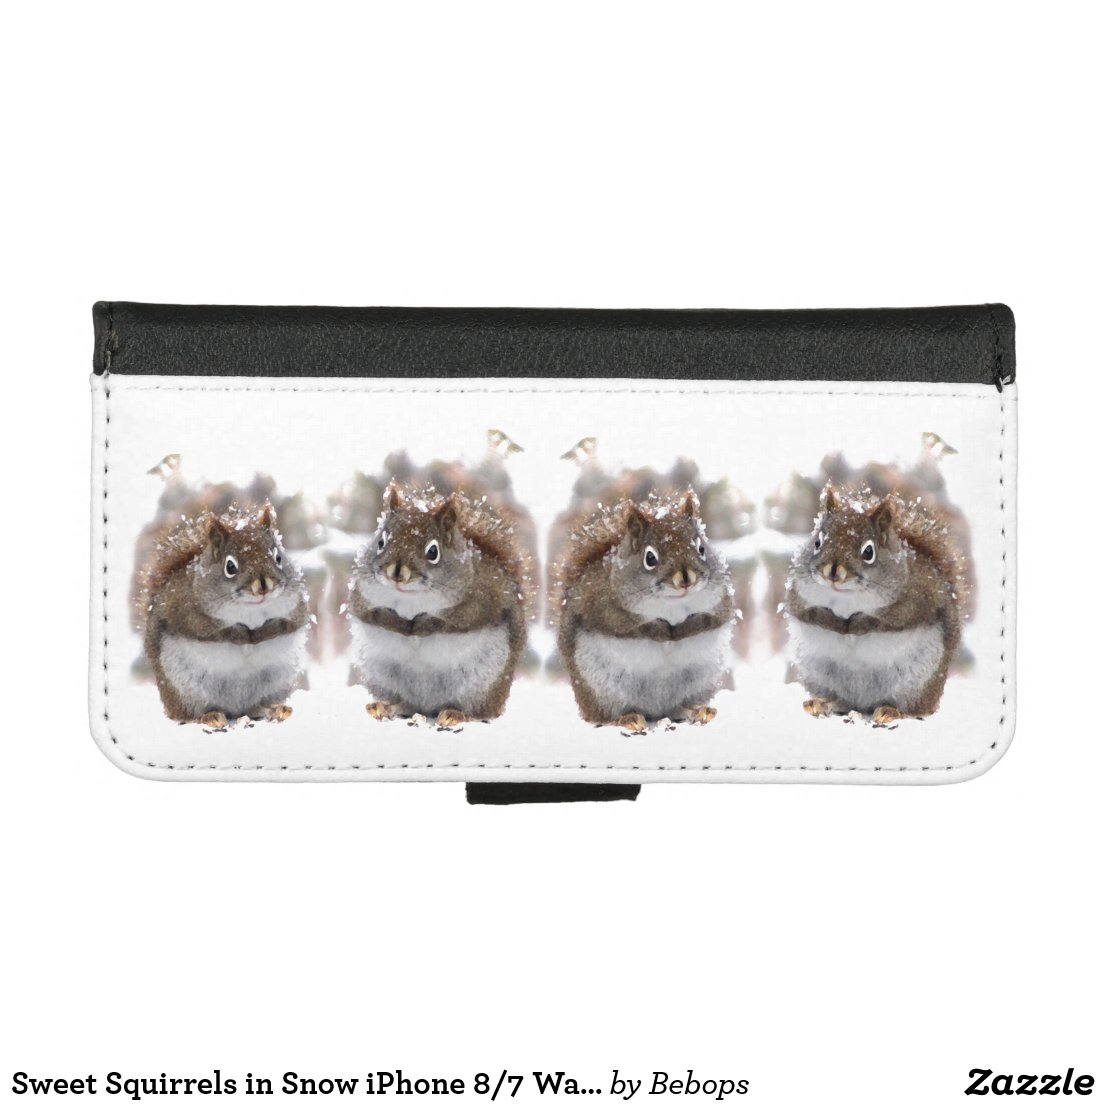 Sweet Squirrels in Snow iPhone 8/7 Wallet Case